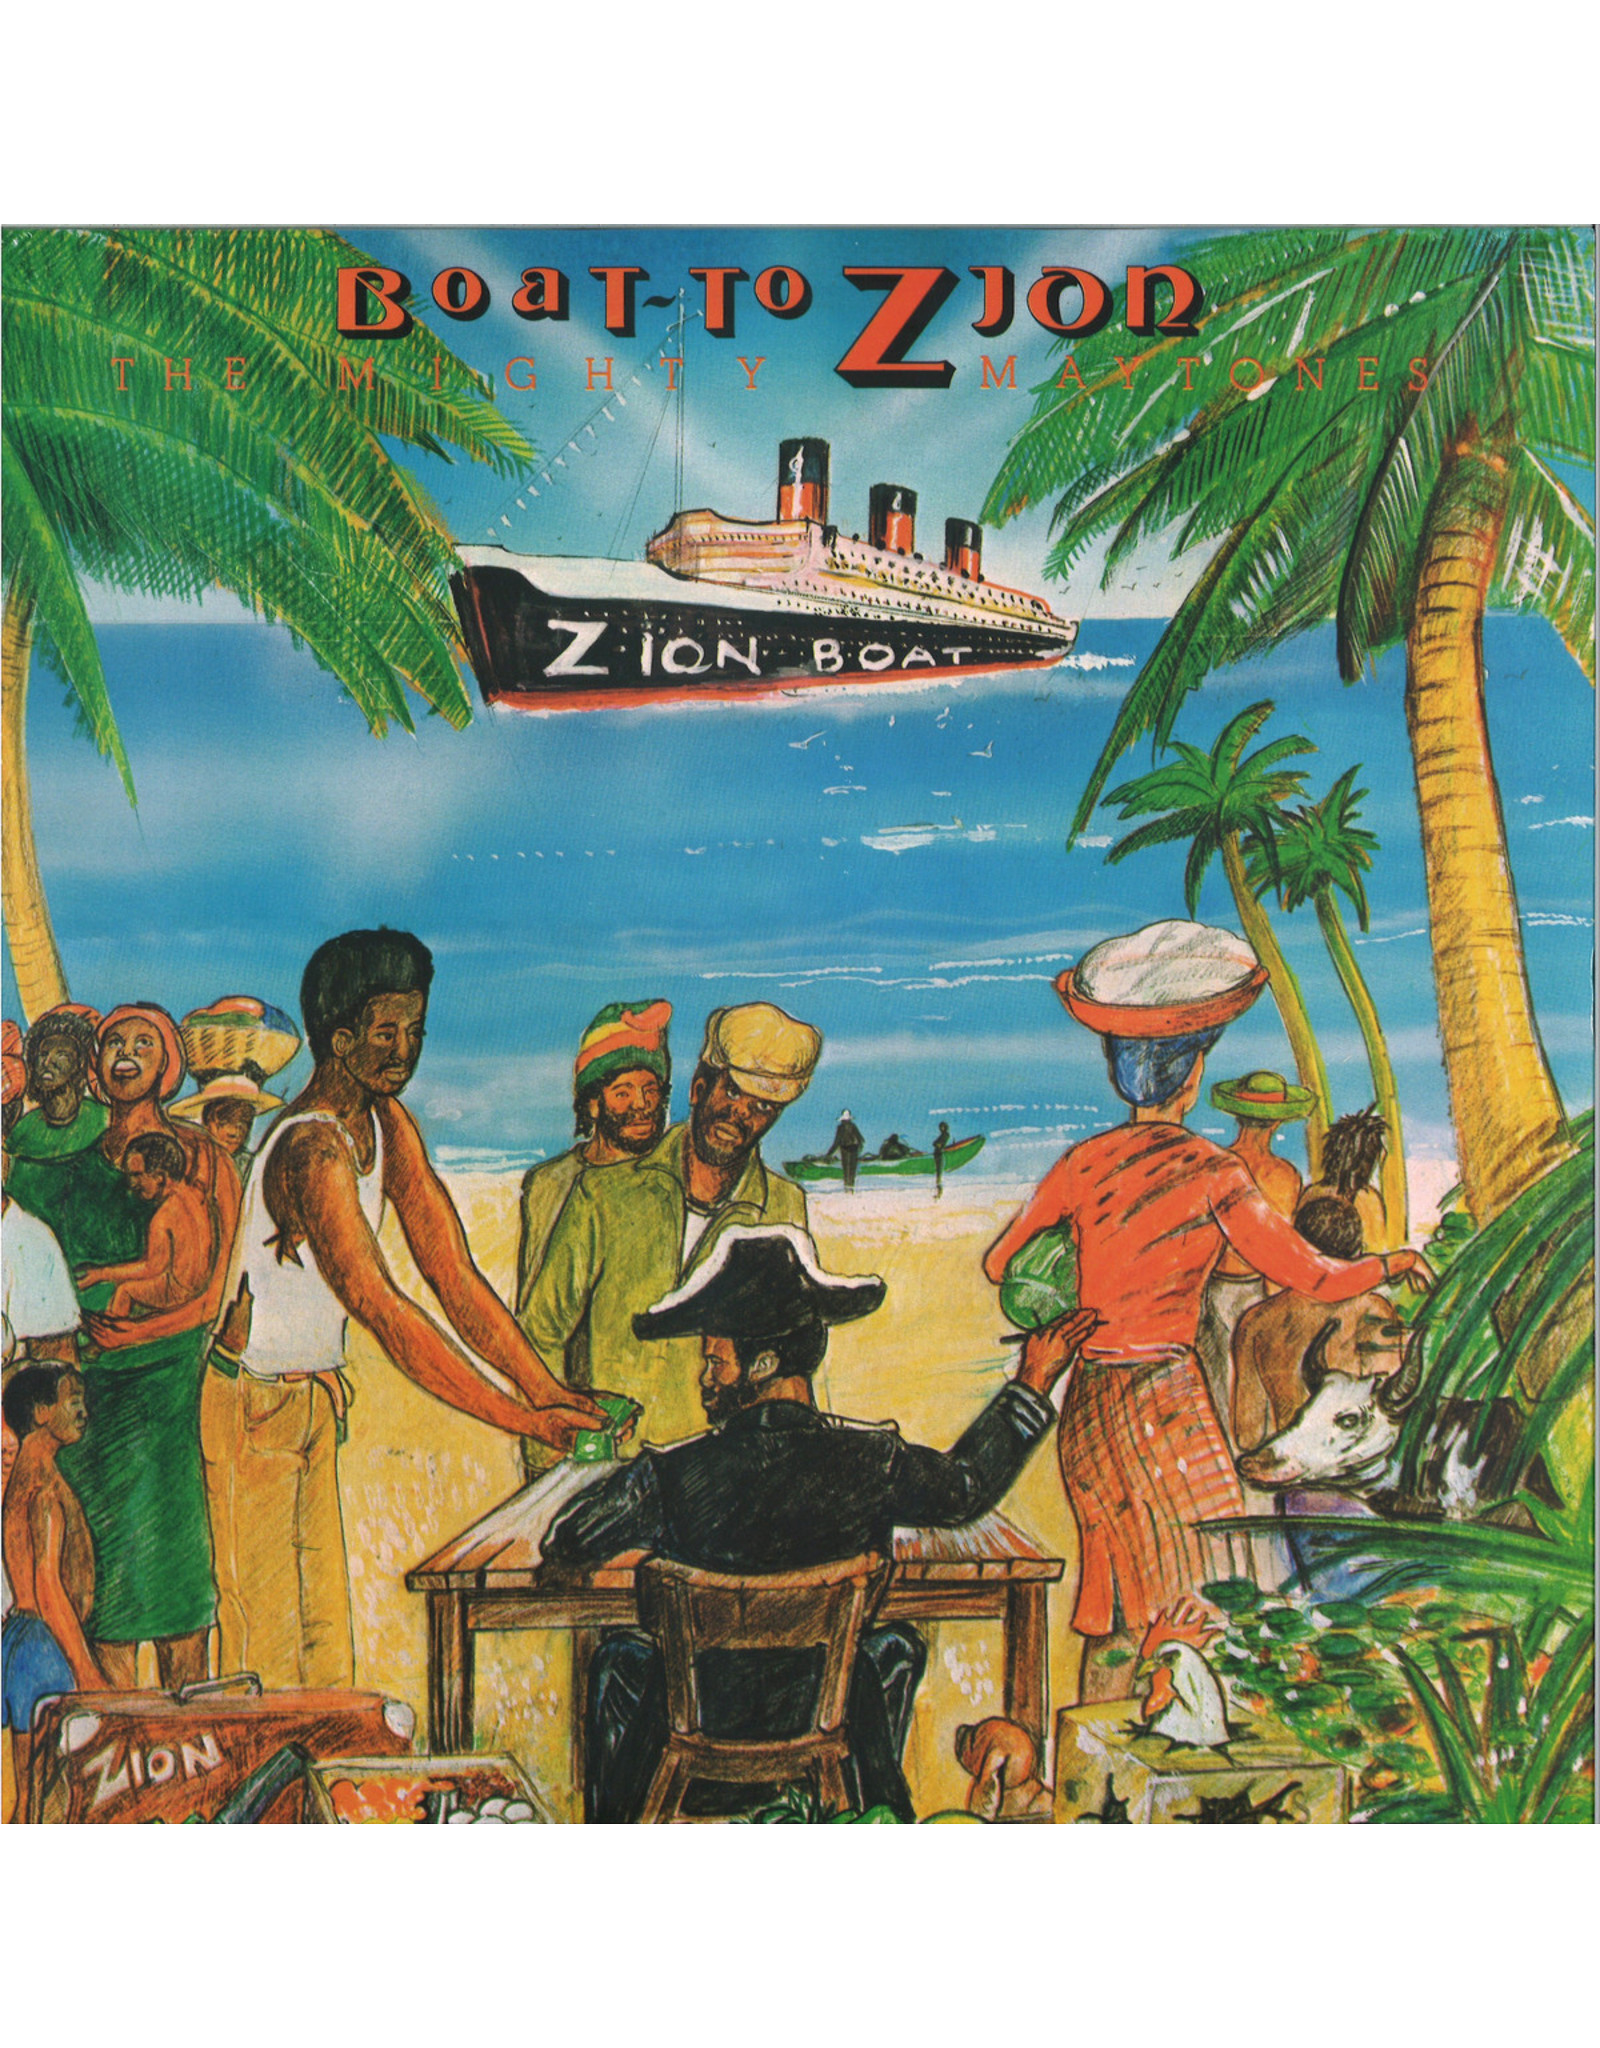 New Vinyl The Mighty Maytones - Boat To Zion LP